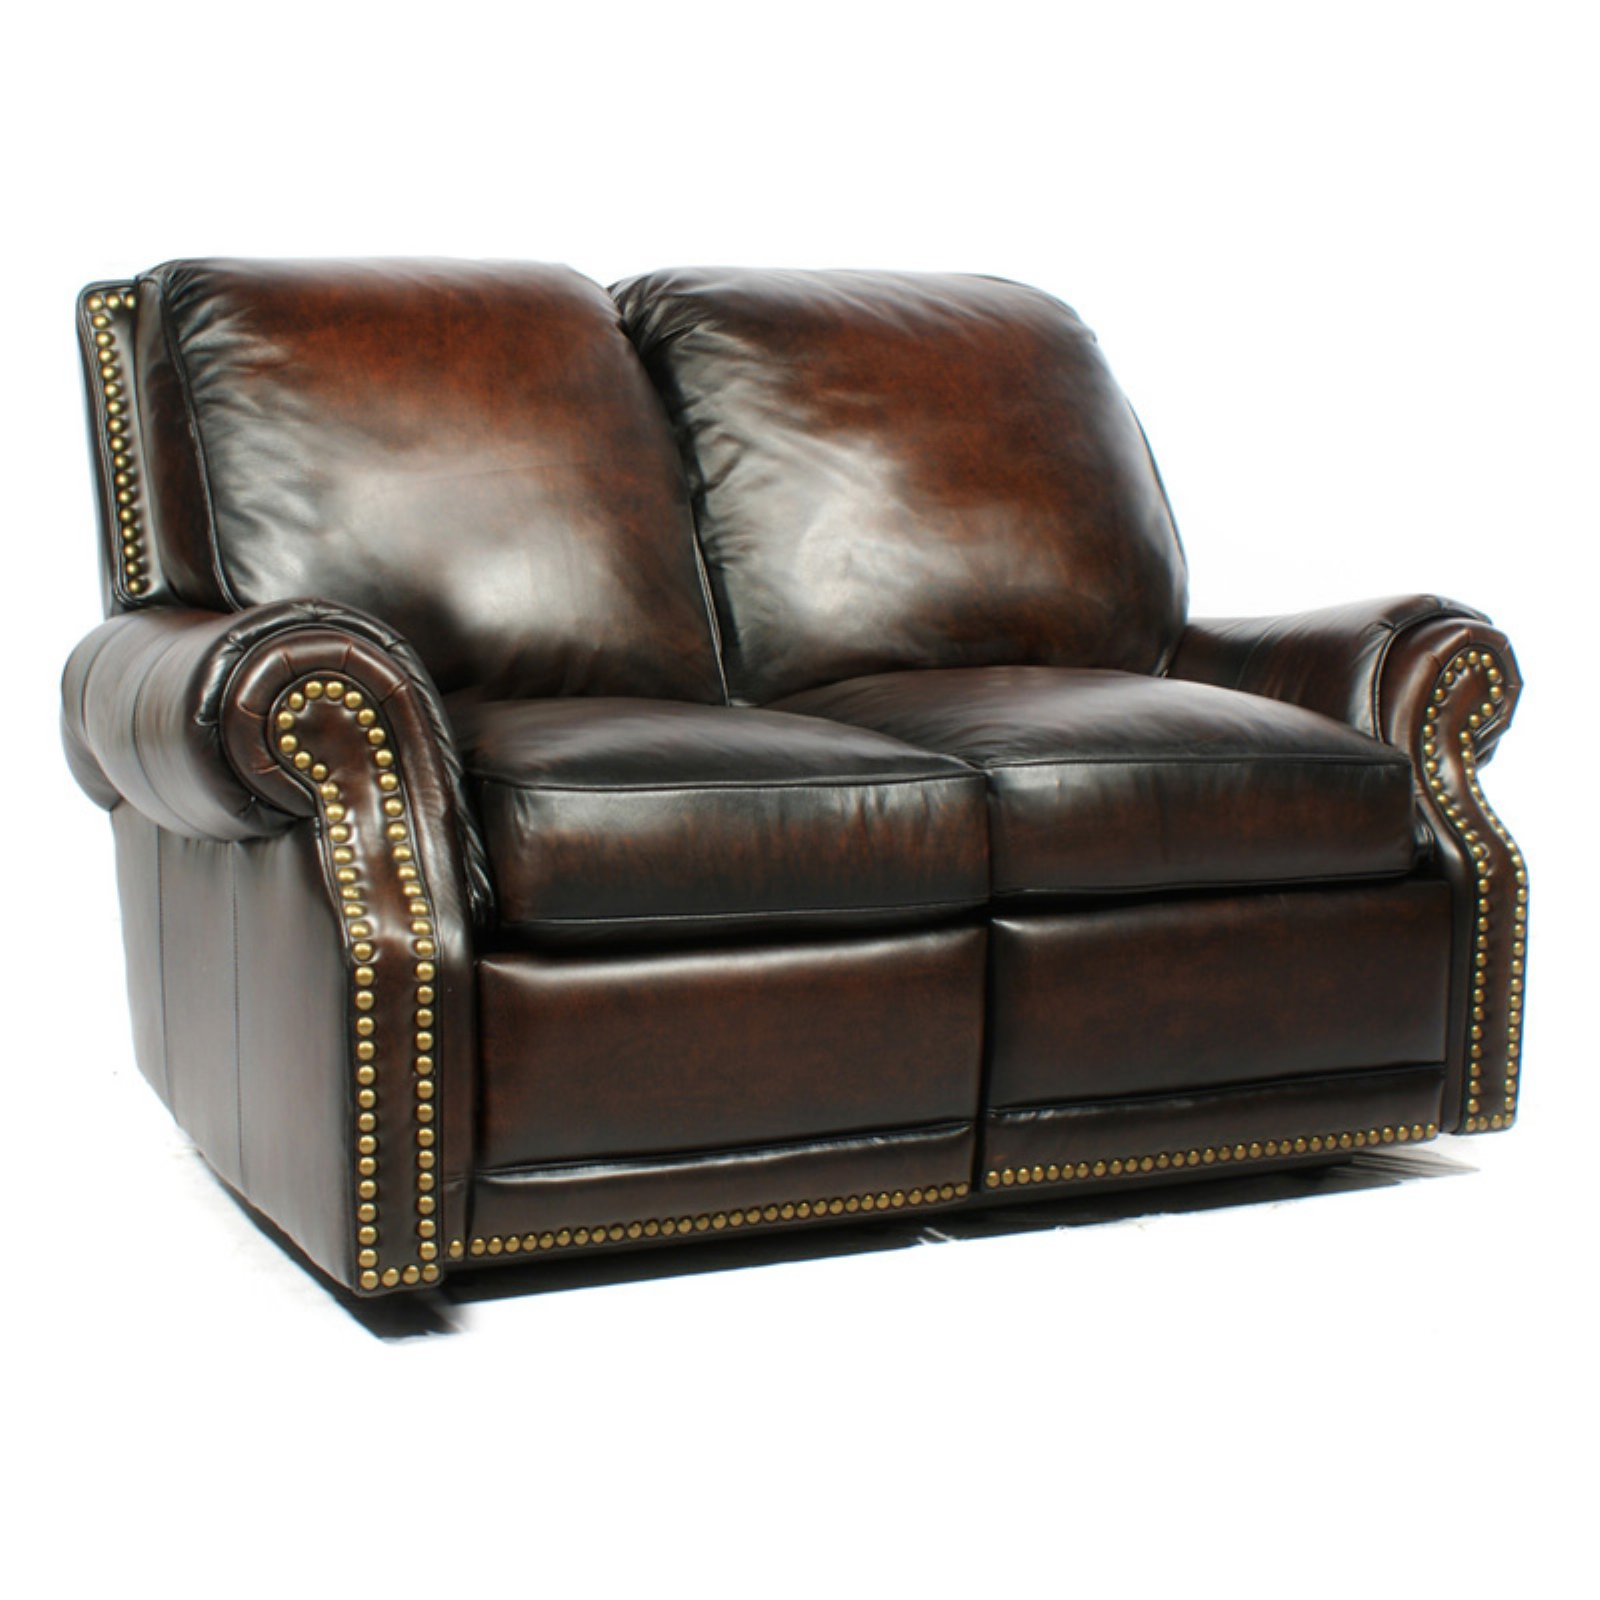 barcalounger premier reclining loveseat coffee in 2019 products rh pinterest com